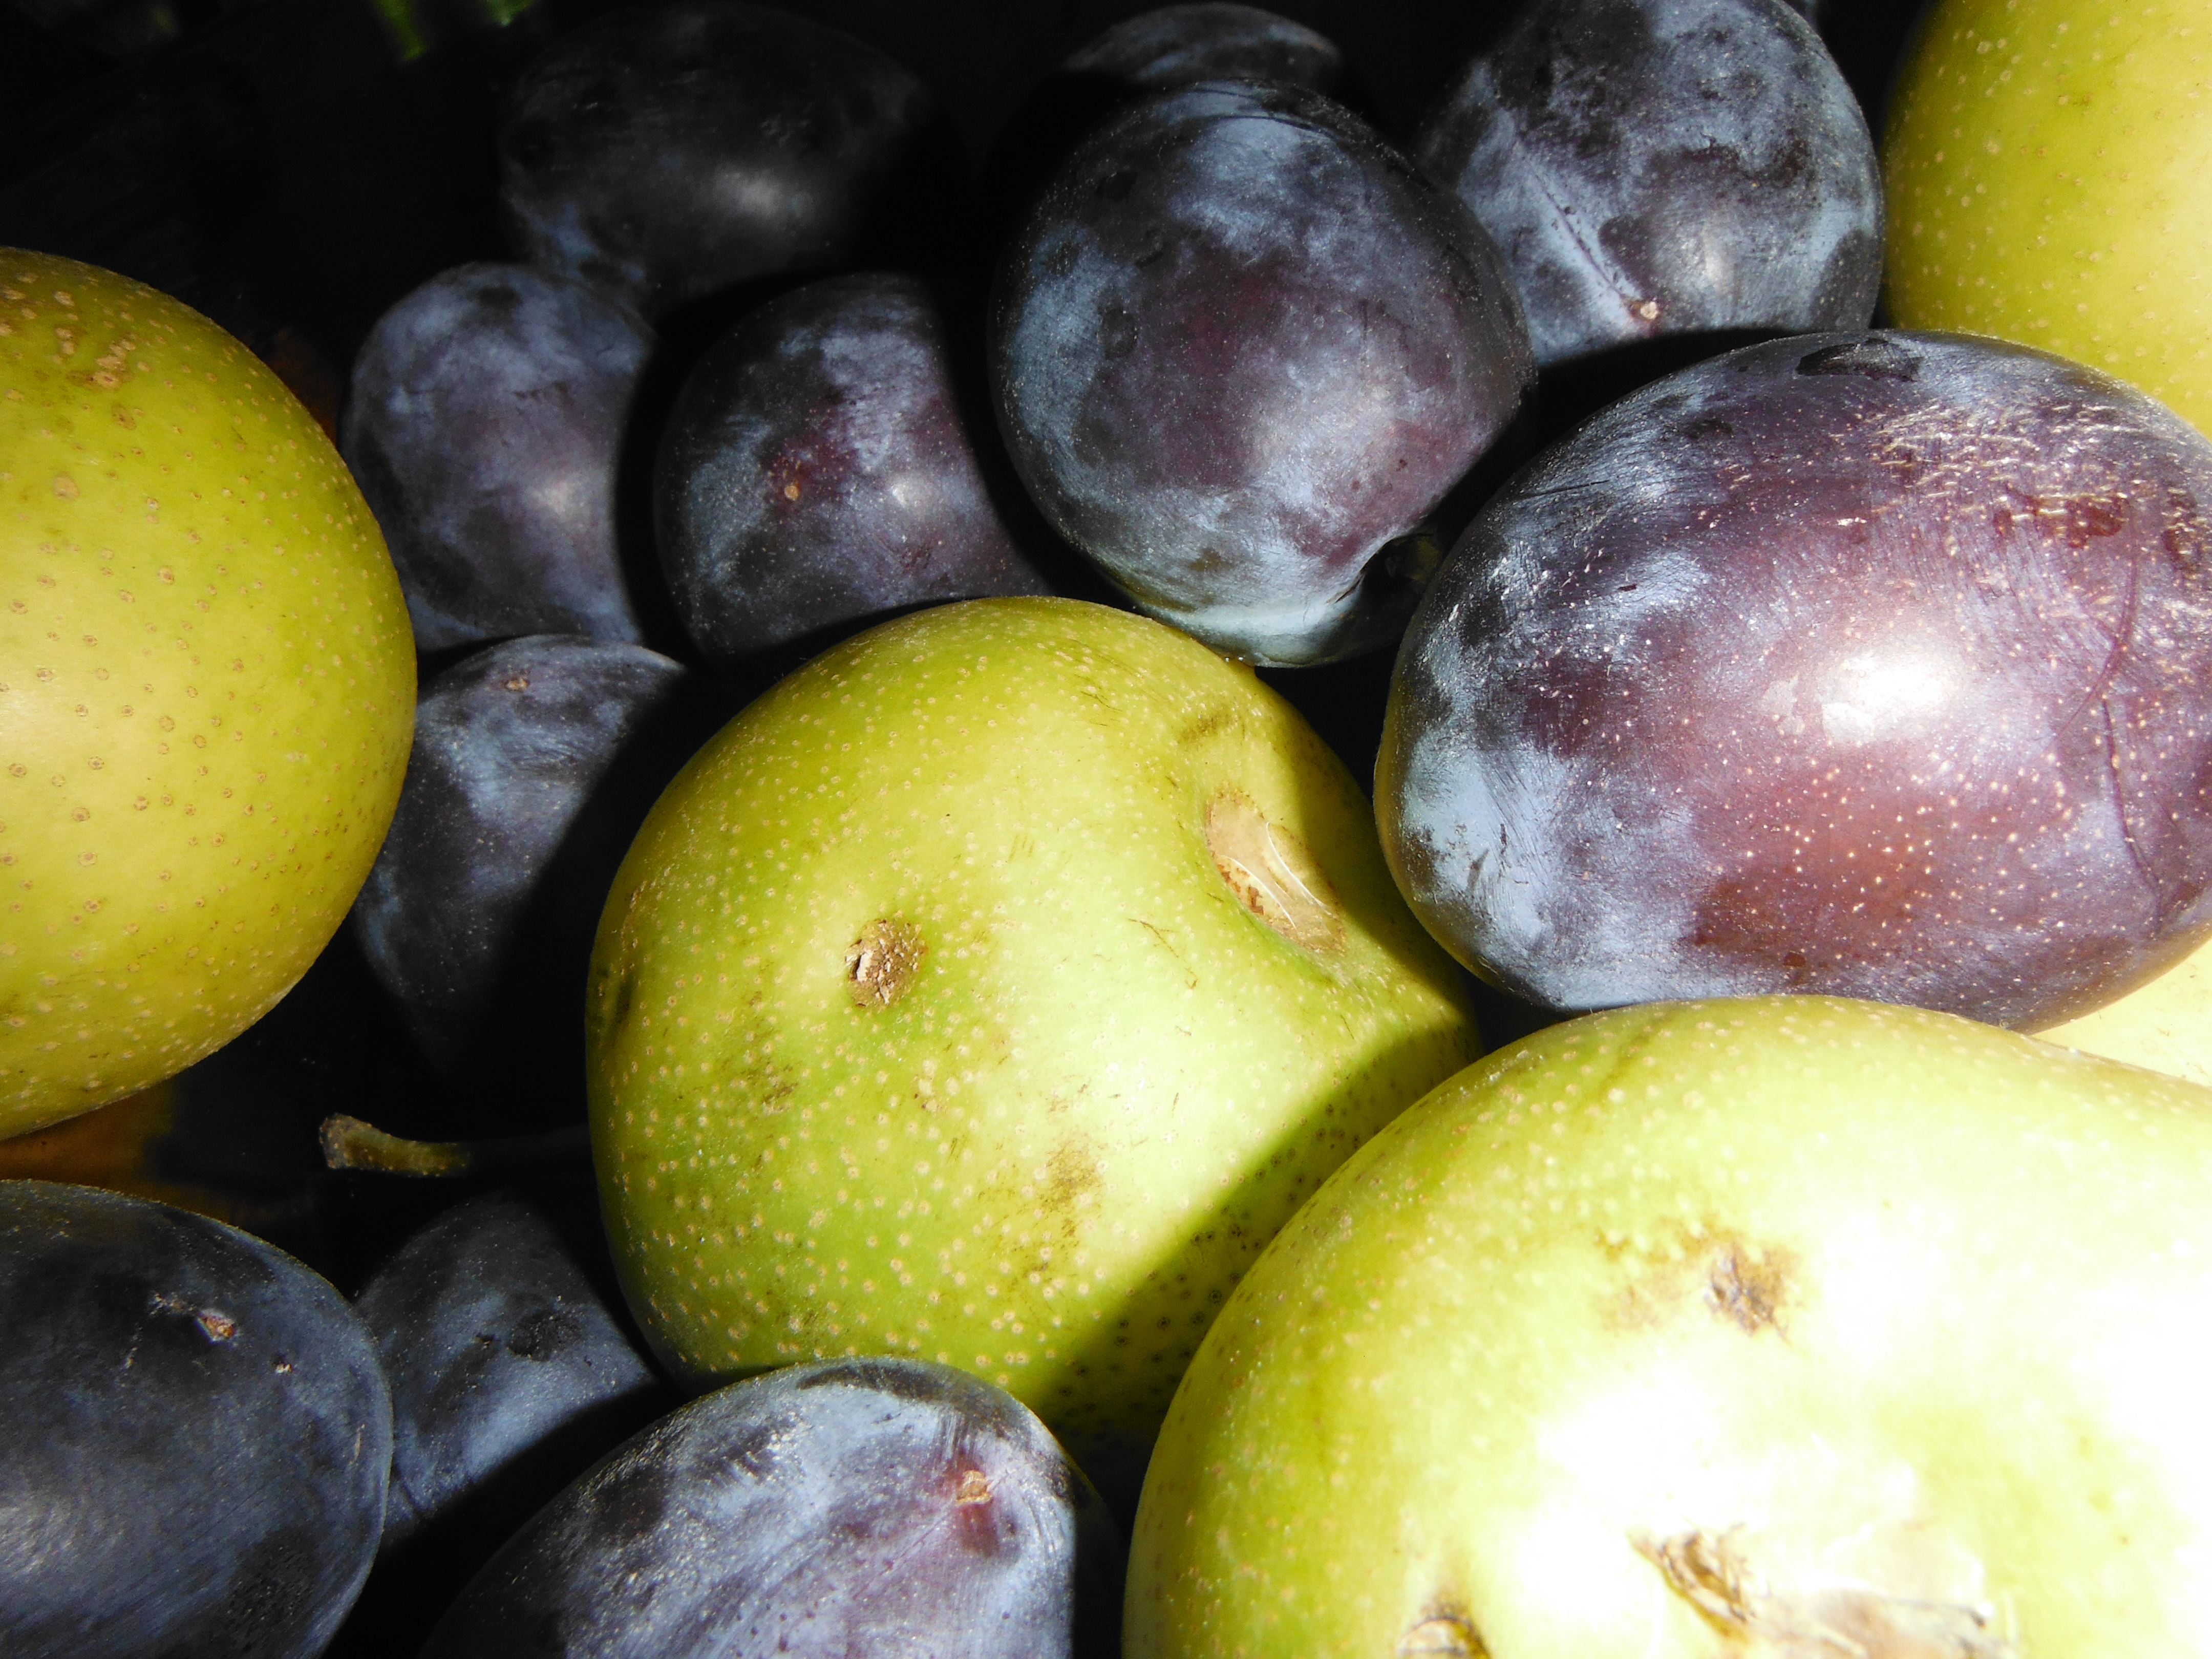 Plums and pear apples